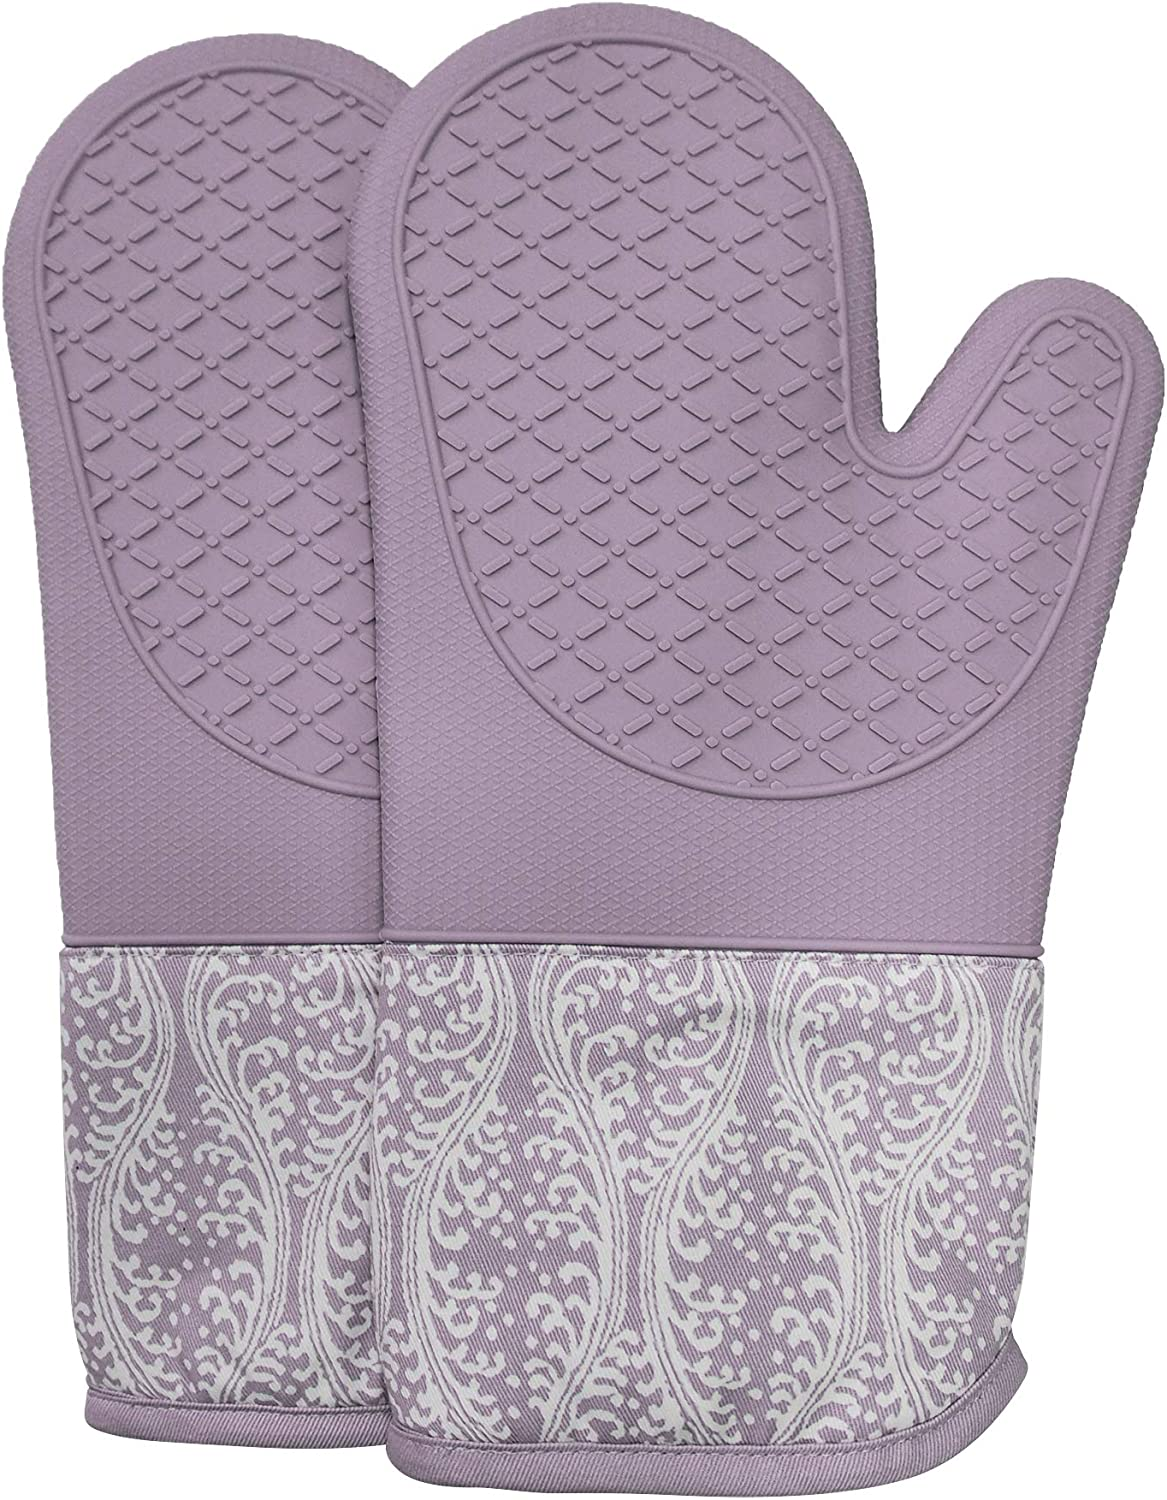 RED LMLDETA Professional Microwave Silicone Oven Mitts for one Pair, Kitchen Lines Set for Heat Resistant with 500 Degrees, Kitchen Gloves Pot Holder for BBQ Cooking Baking (Purple)